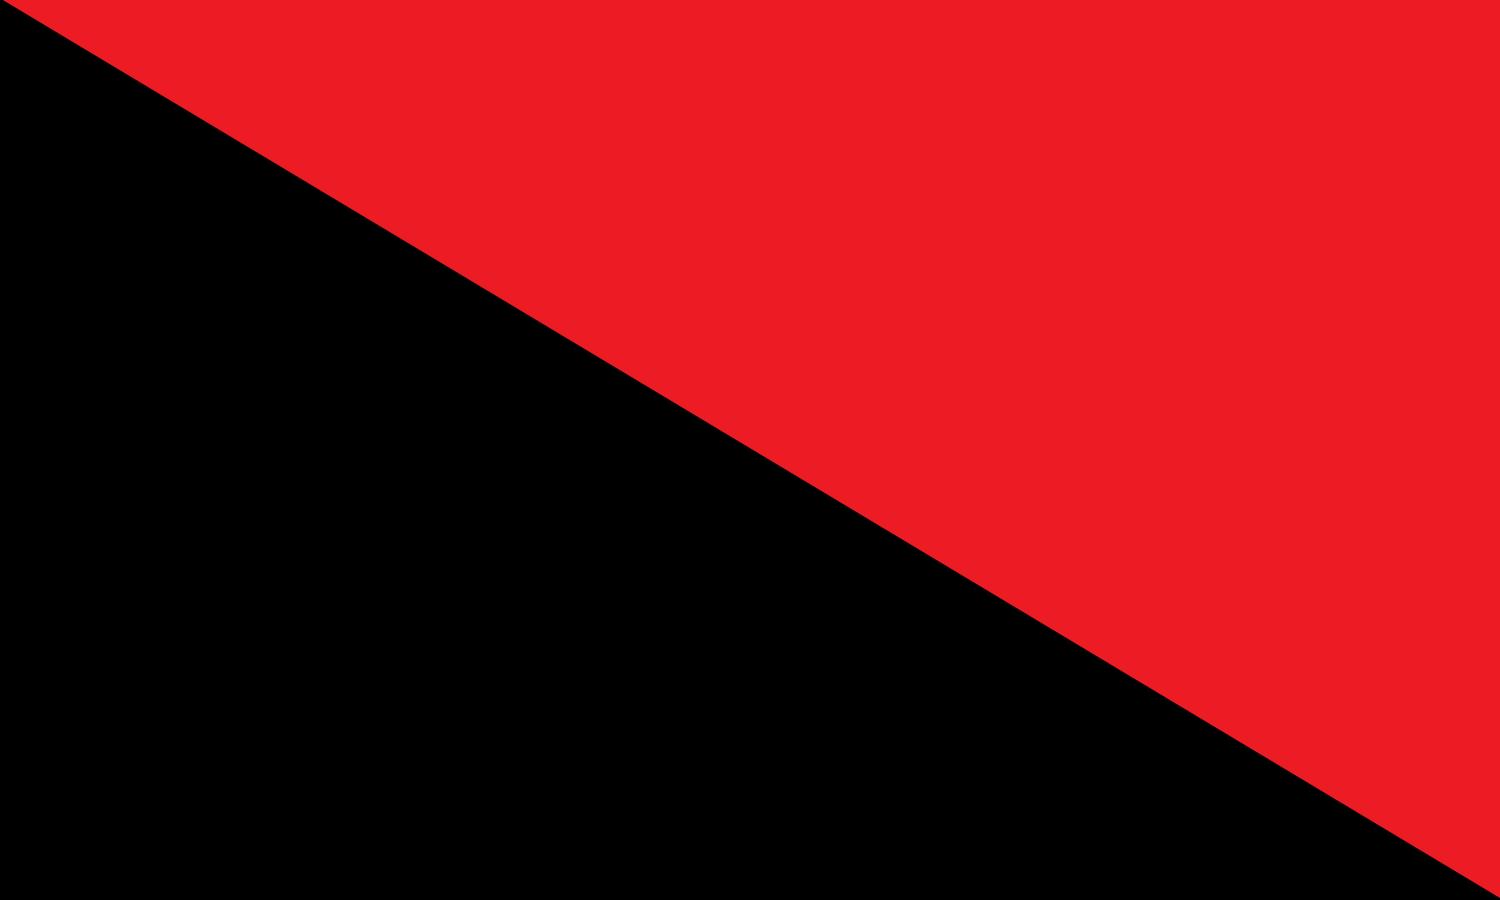 Fileblack & Red Flagpng  Wikipedia. Moisture Barrier In Basement. Permit To Finish Basement. Basement Bathroom Plumbing. In Floor Heating Basement. Victoria Basement Outlet. Black Basement Ceilings. Smelly Basement. Water Coming In Through Basement Floor